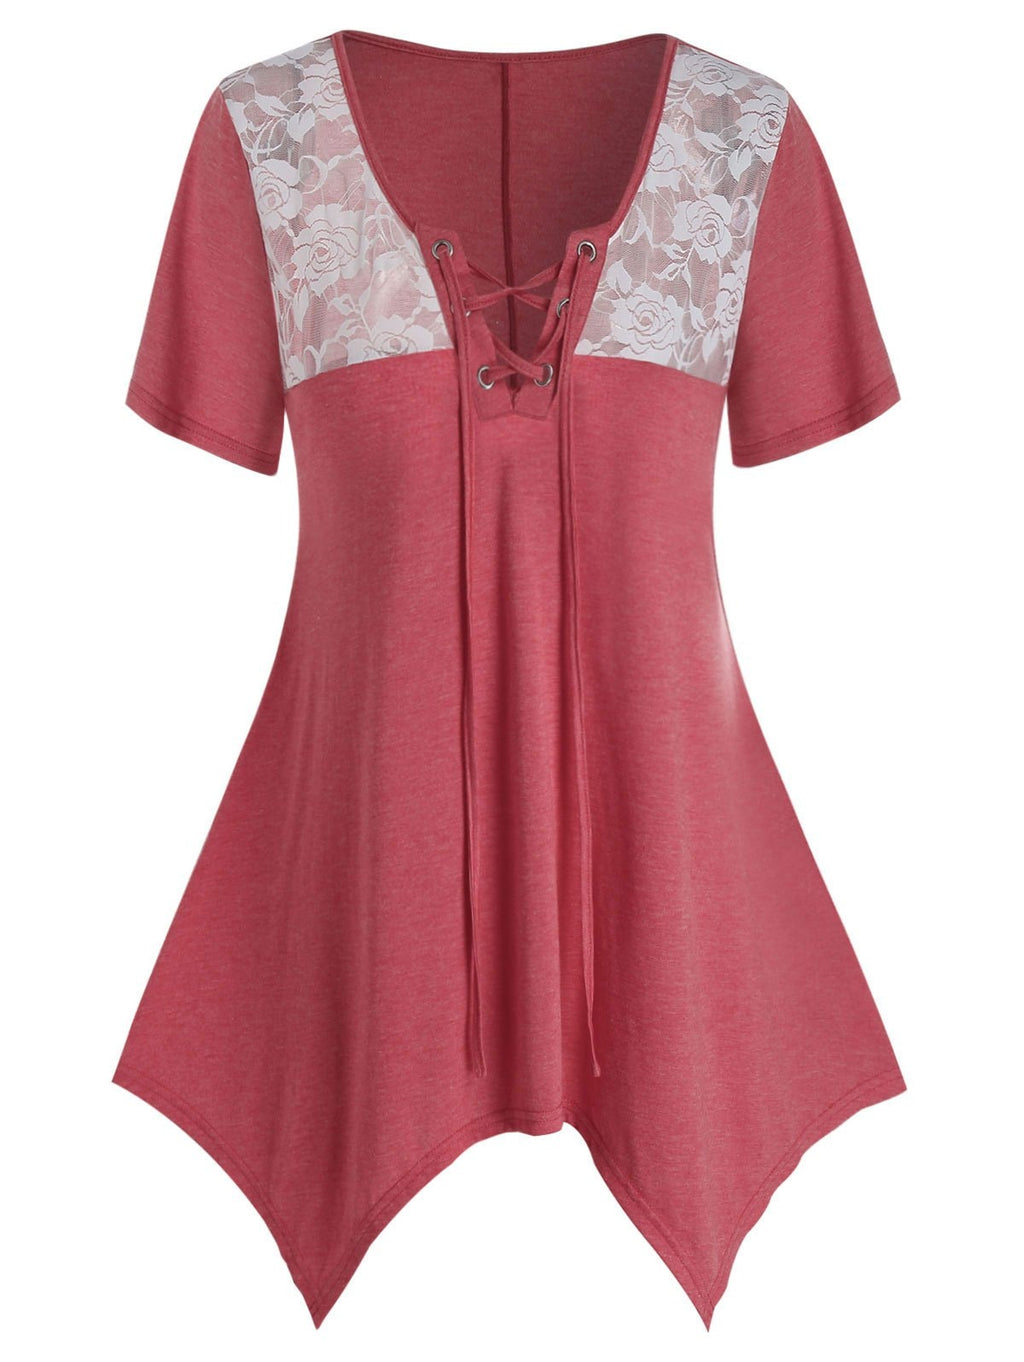 Plus Size Lace Panel Lace Up Hanky Hem Tunic Top